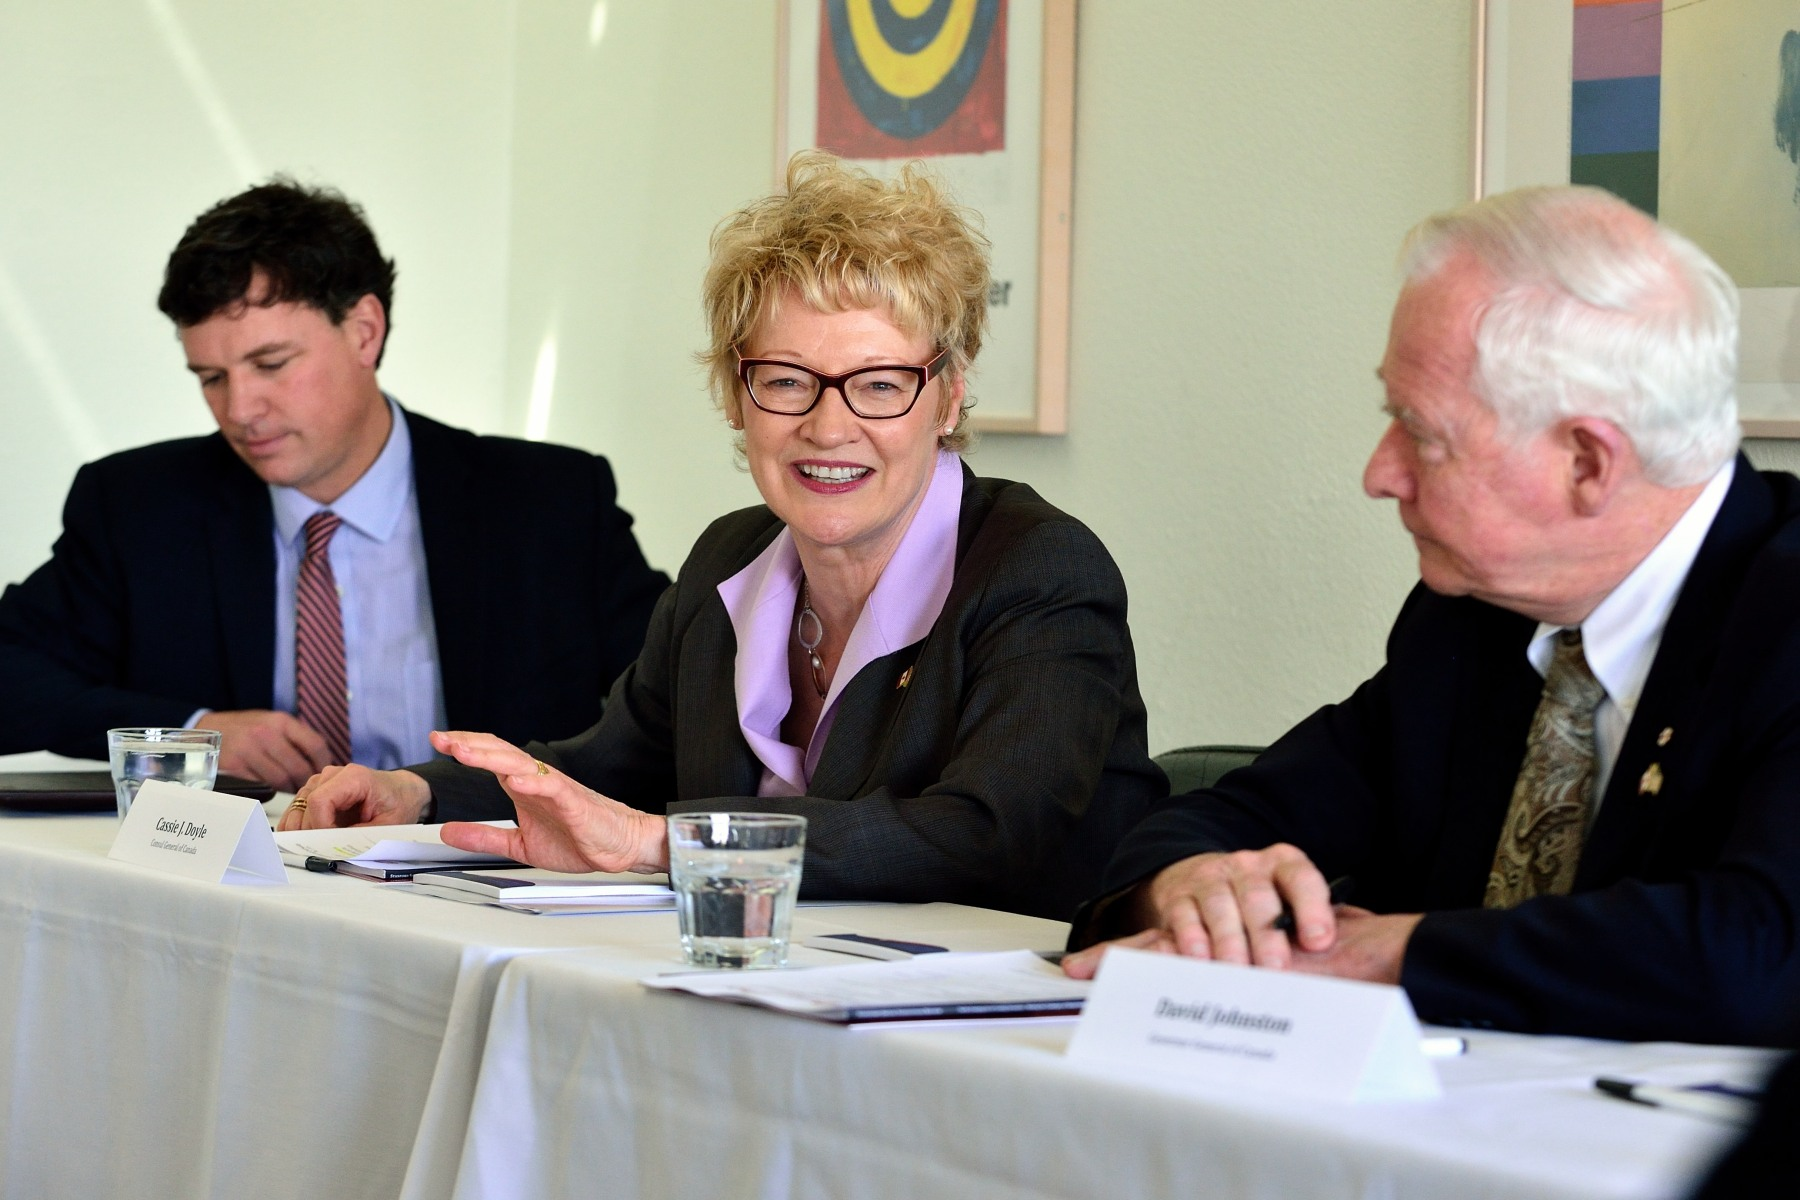 The Governor General, joined by Cassie Doyle, Consul General of Canada (centre), and Ian Bird, President of Community Foundations of Canada (left), discussed  efforts to increase philanthropic funding in the United States and how it might serve as a model for increasing philanthropy in Canada with representatives from the Stanford Center on Philanthropy and Civil Society (Stanford PACS) and other American organizations.